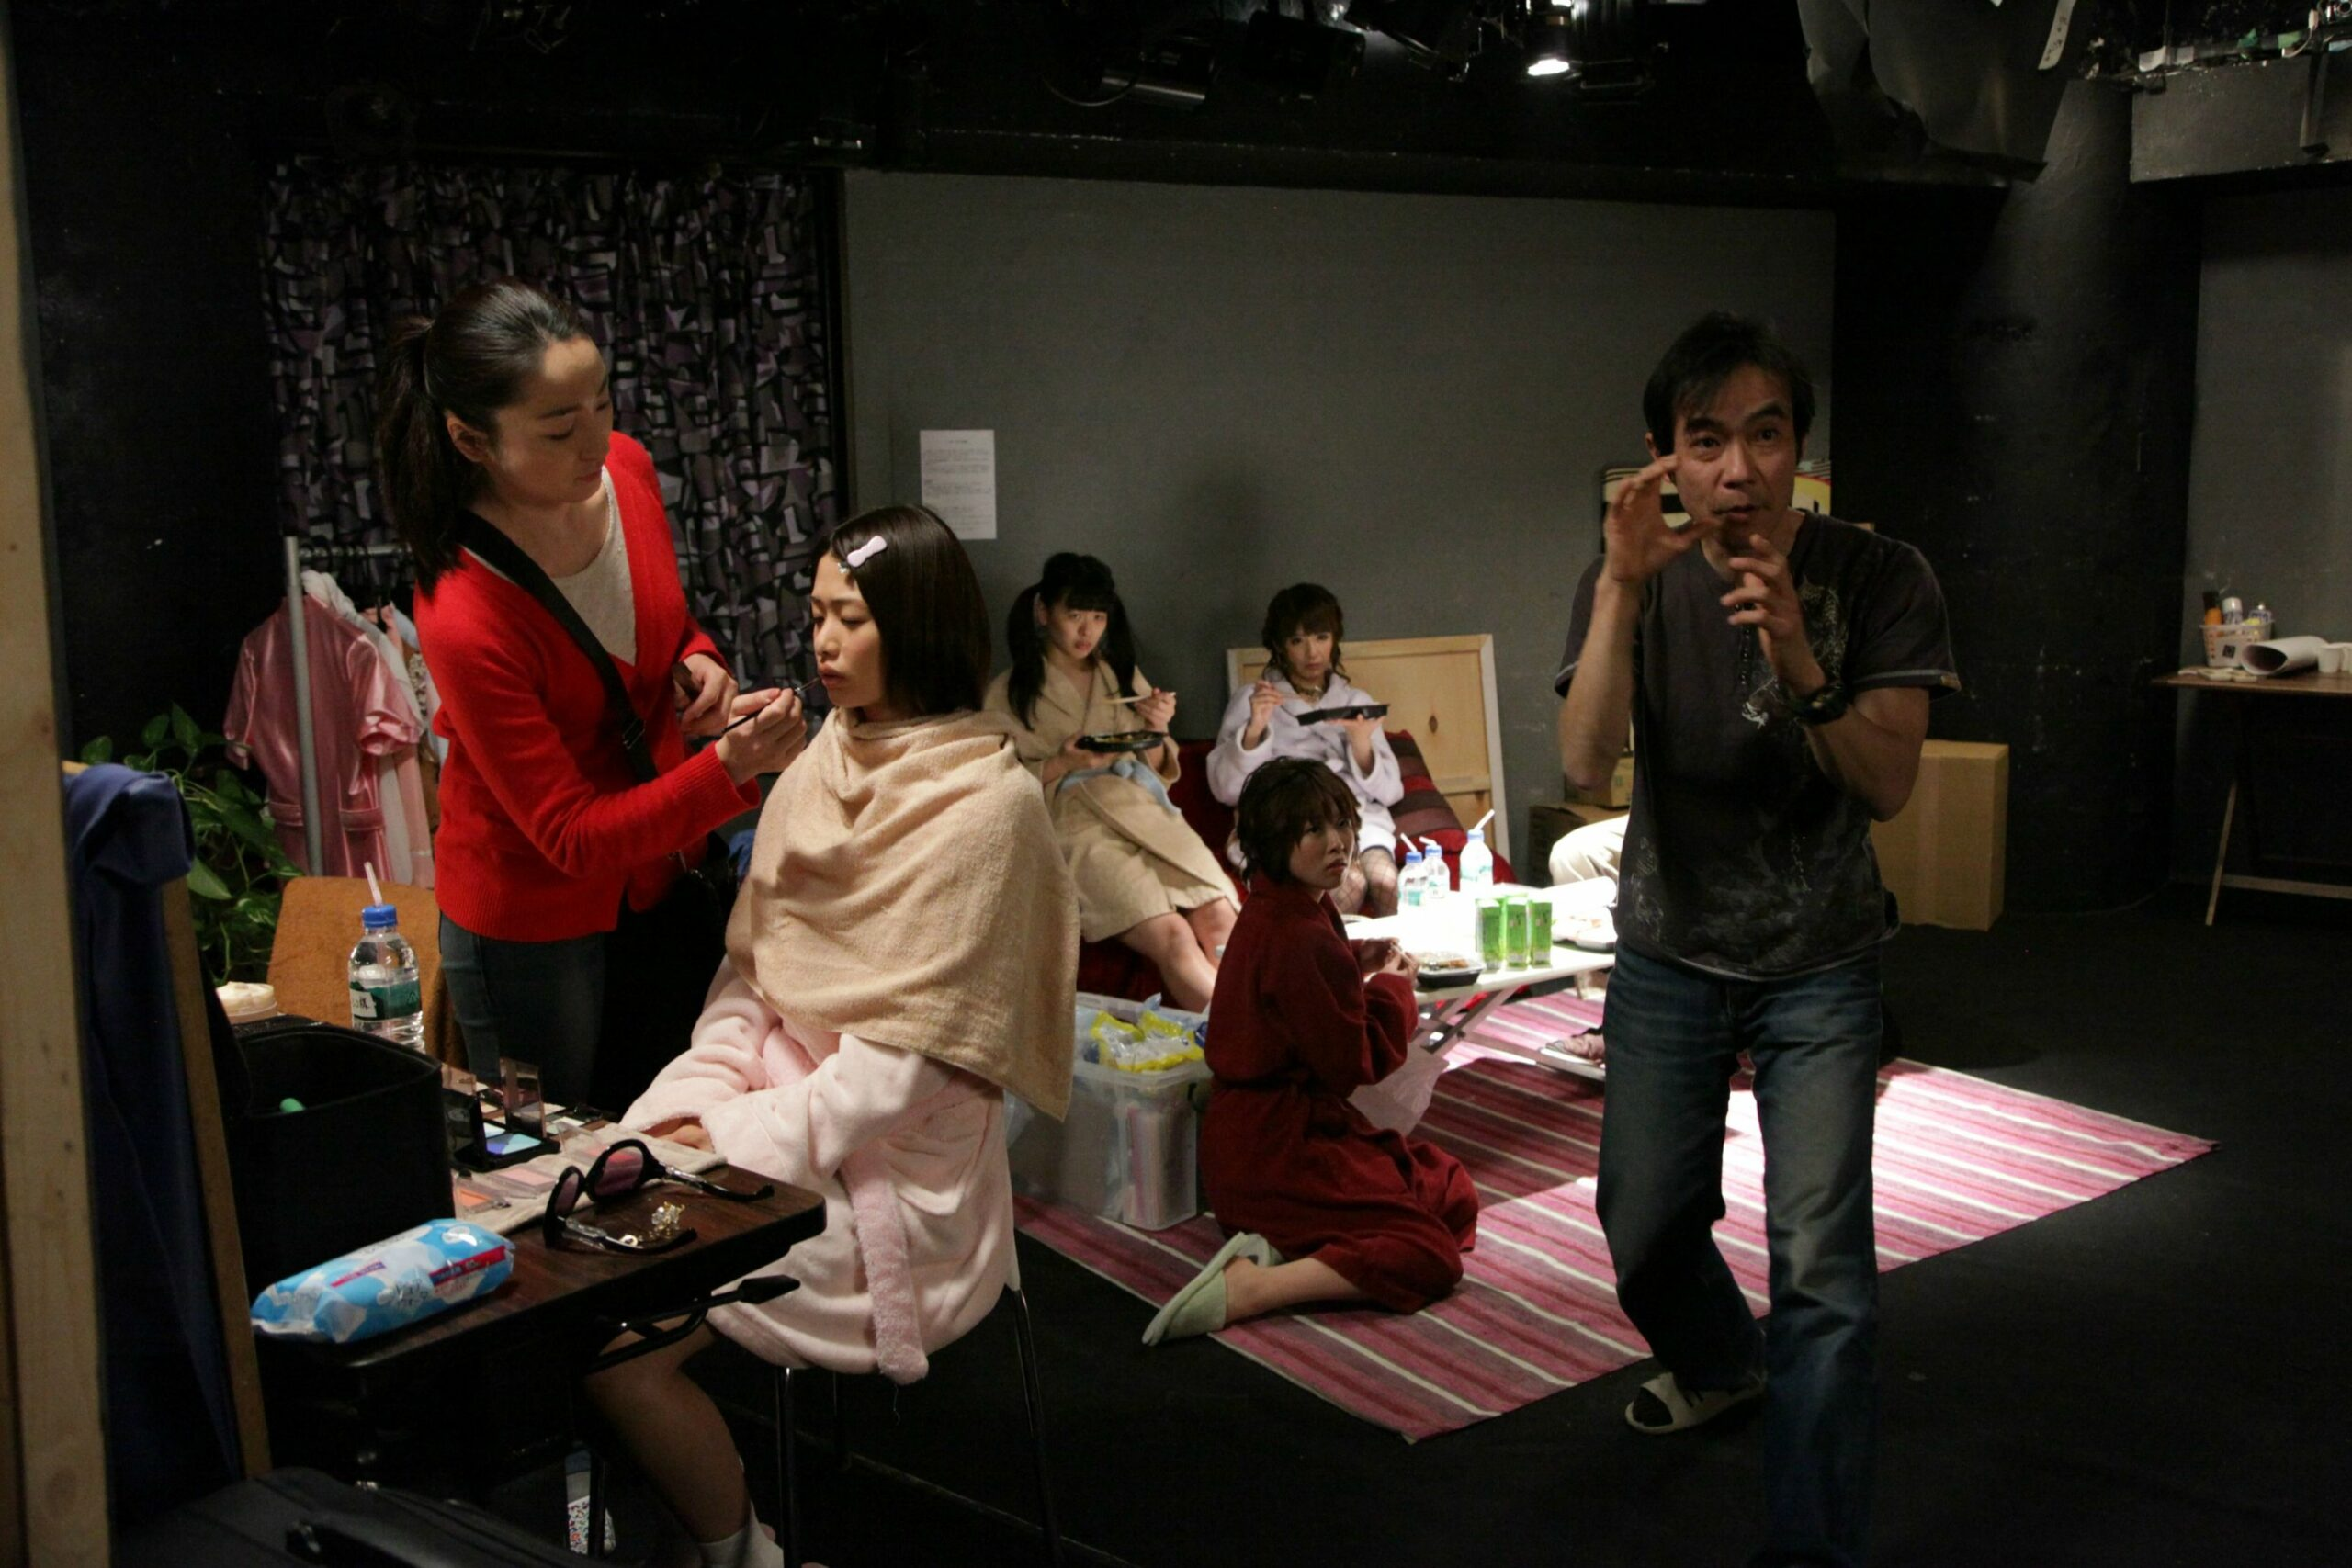 Japanese AV Comedy Makeup Room Release by Third Window Films Today ..